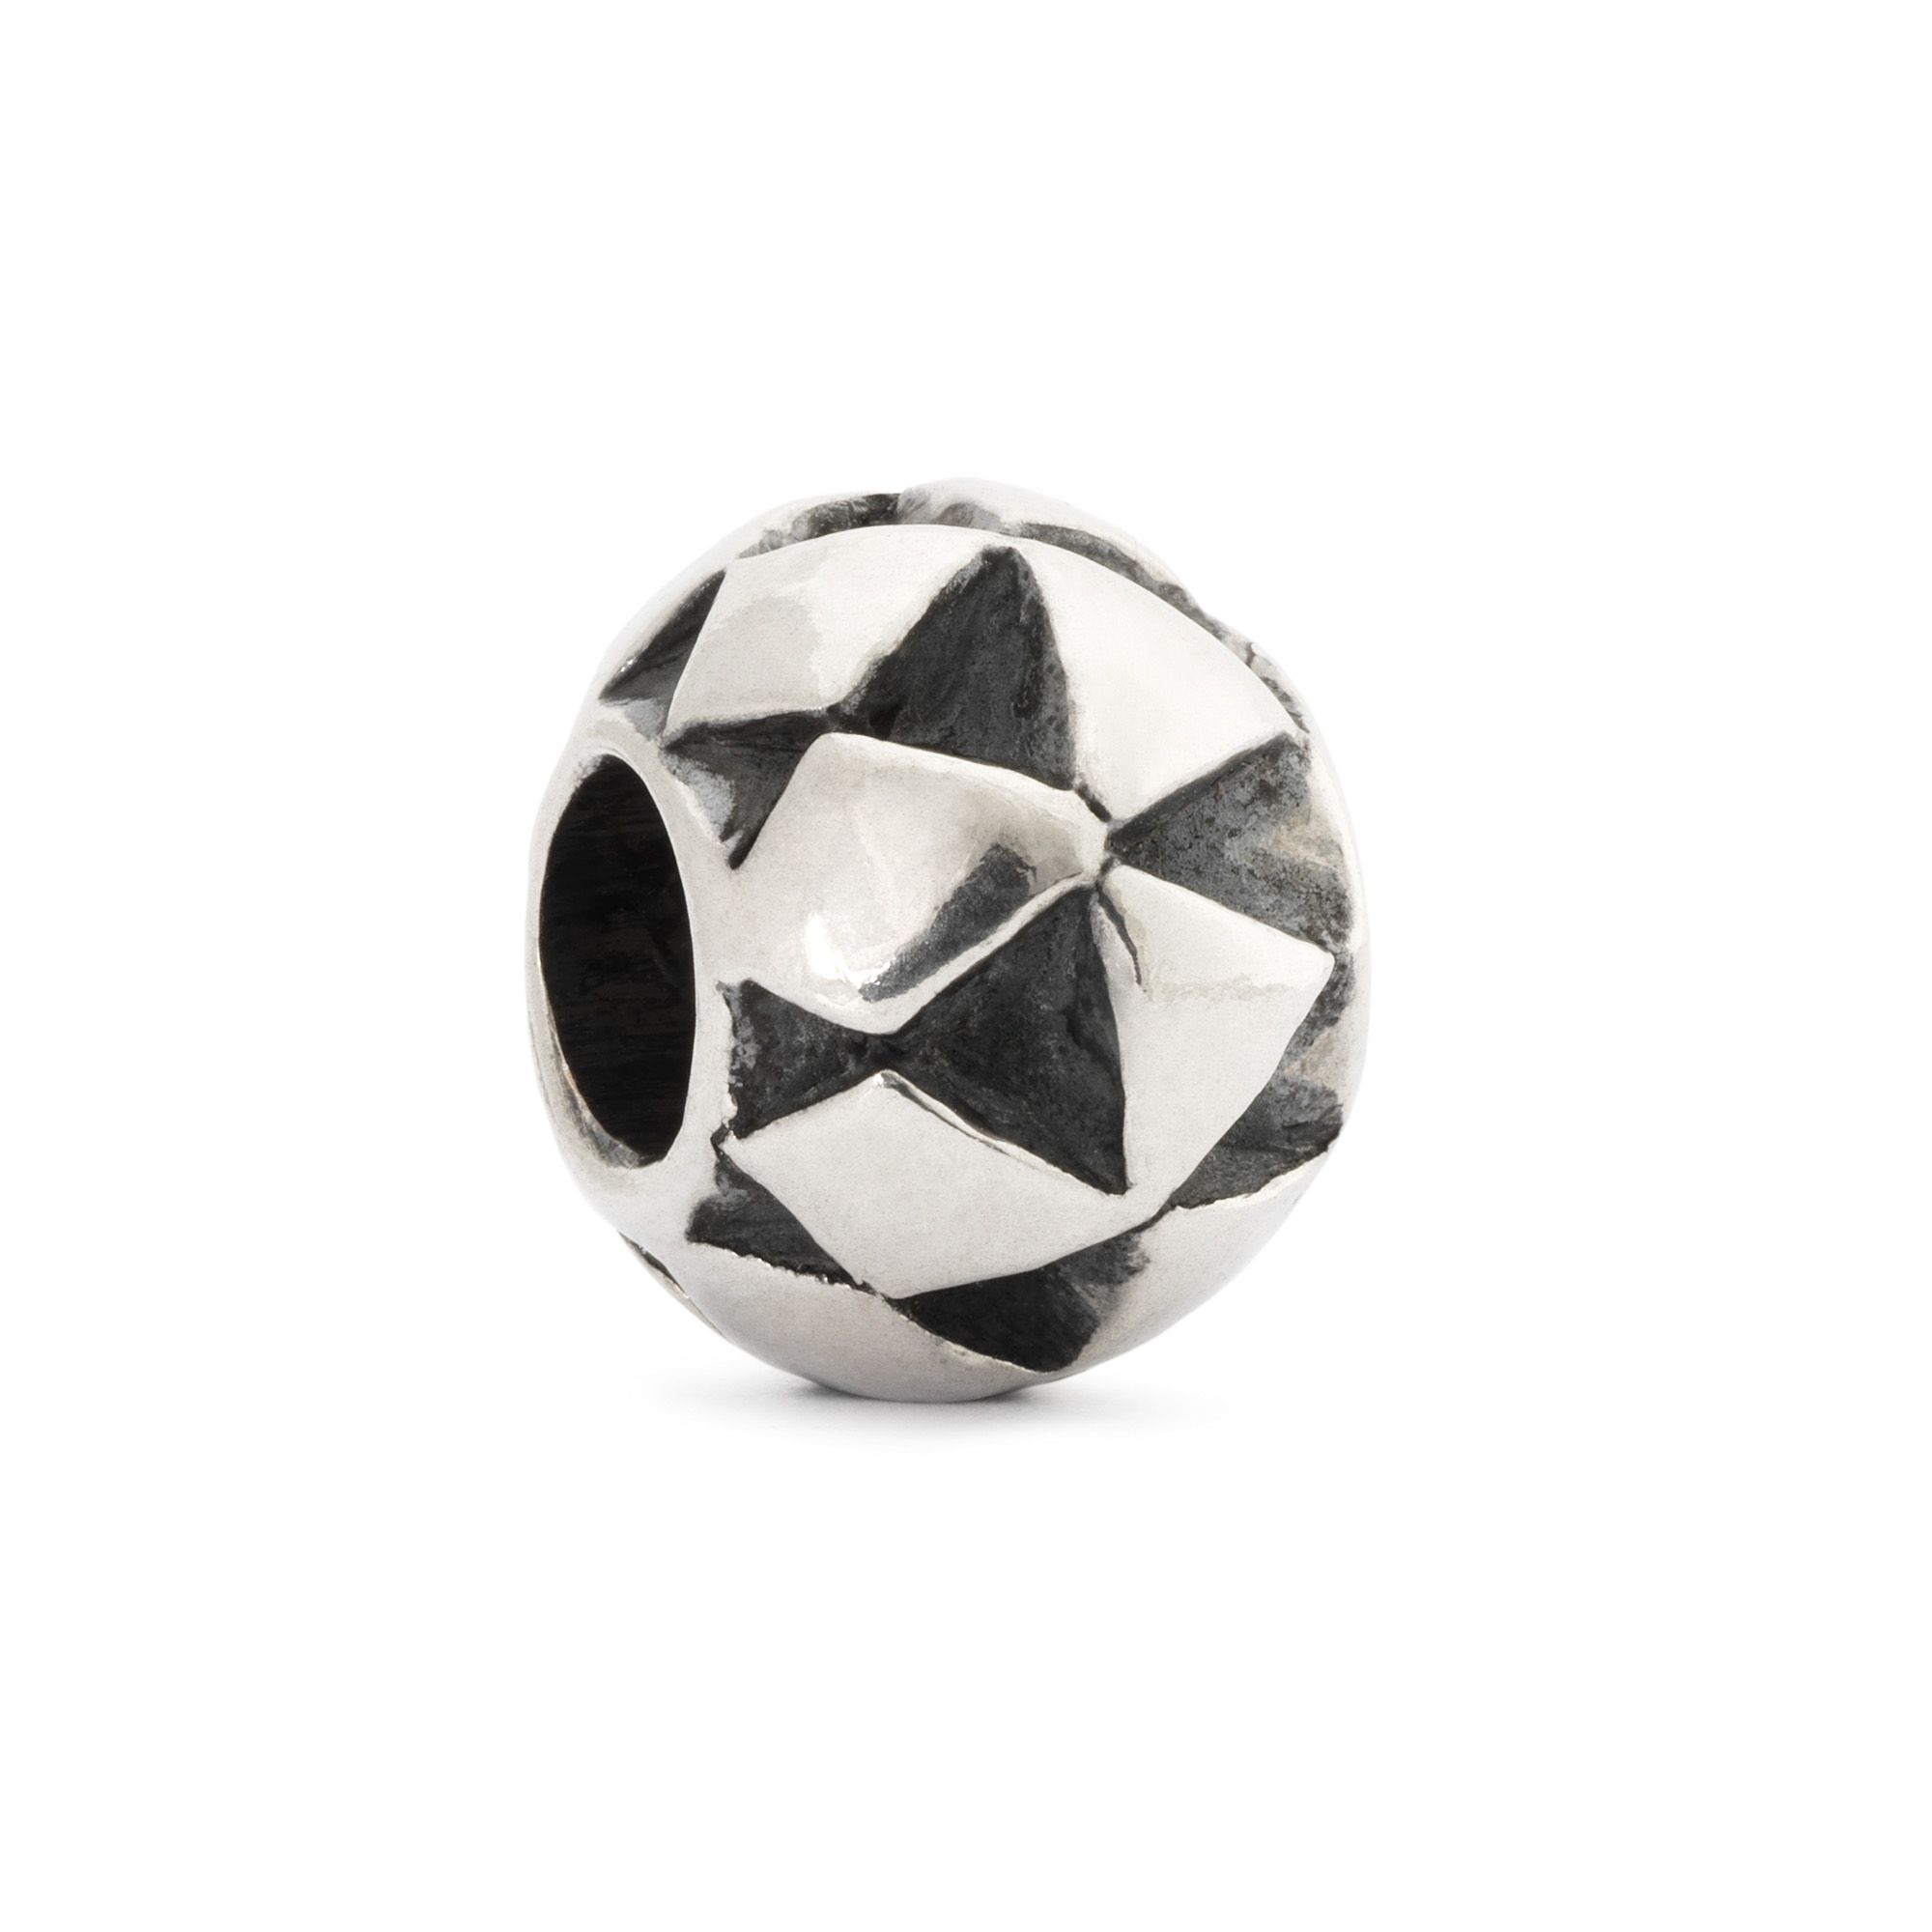 Moroccan cushion sterling silver charm bead